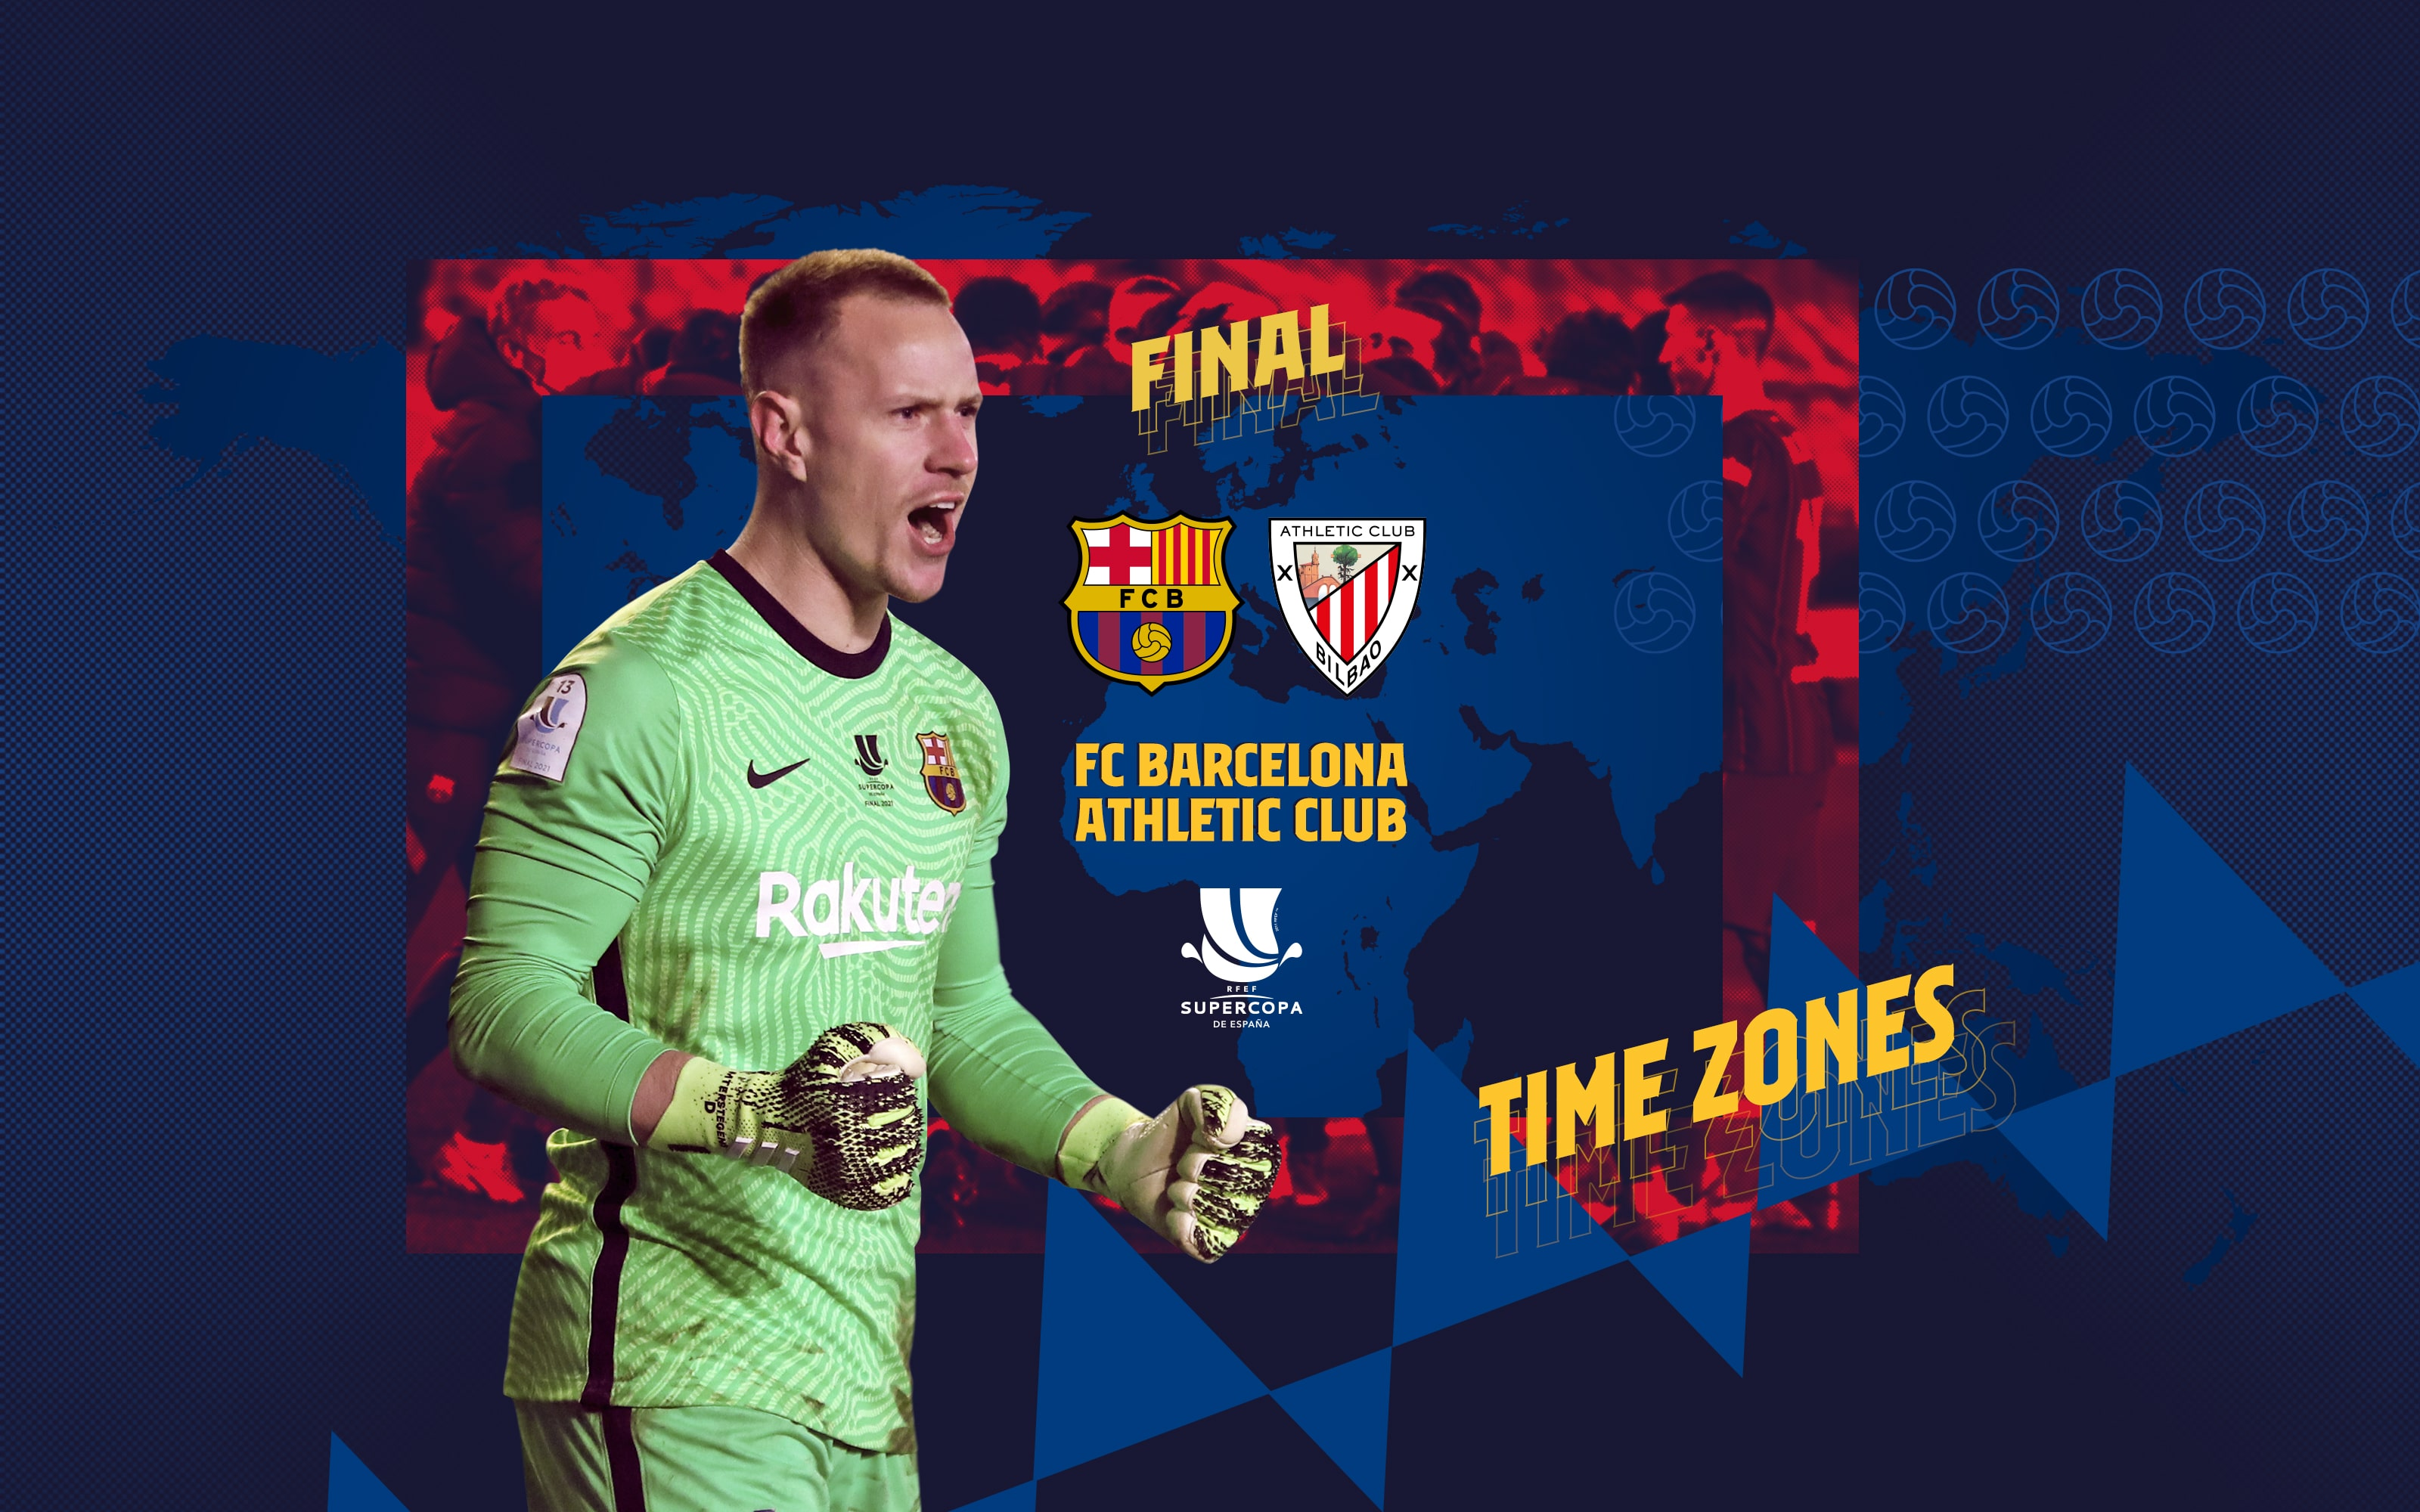 How to watch FC Barcelona v Athletic Club